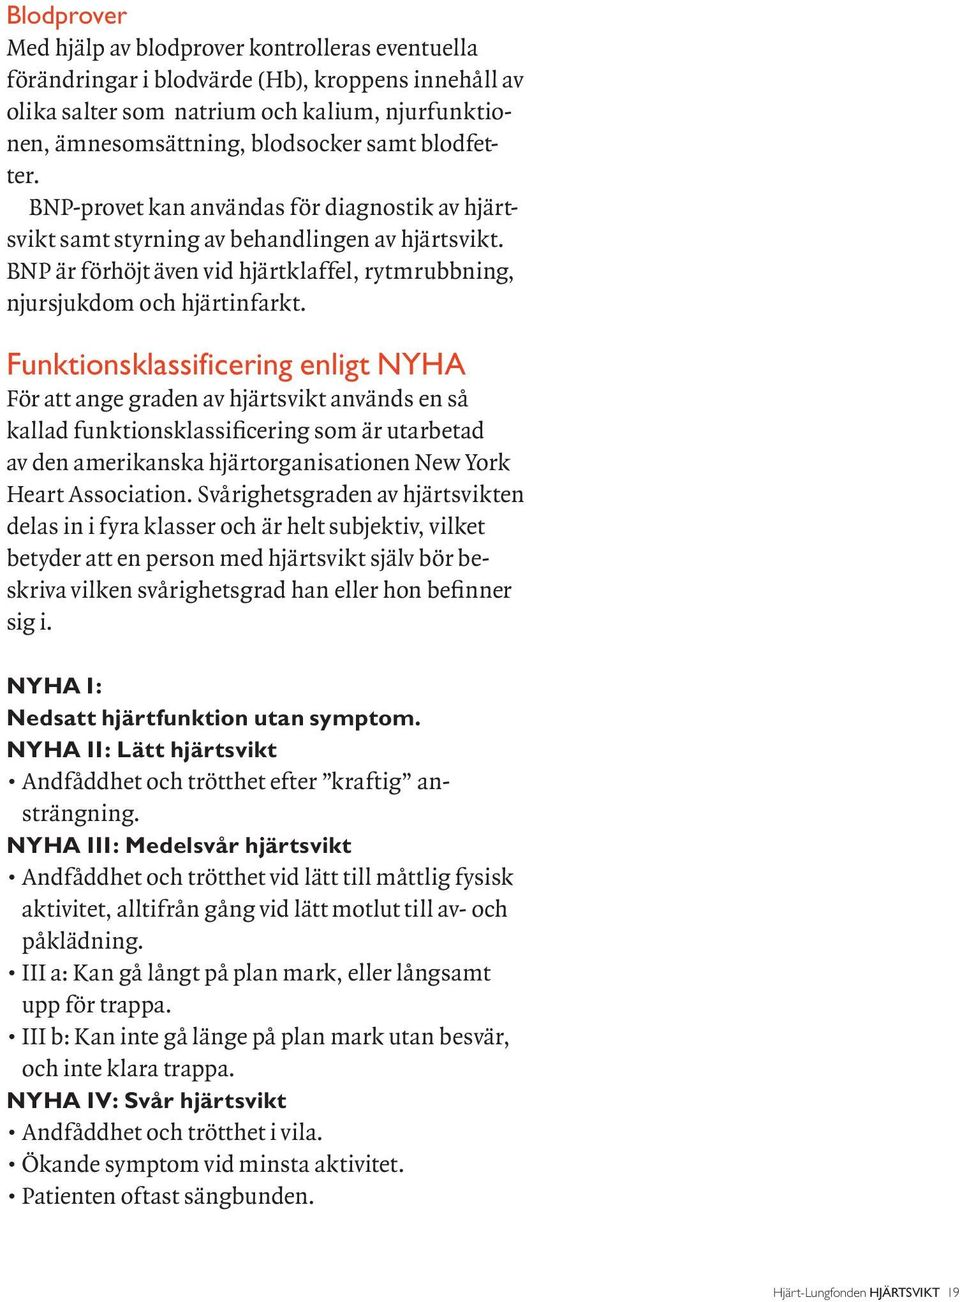 Funktionsklassificering enligt NYHA För att ange graden av hjärtsvikt används en så kallad funktionsklassificering som är utarbetad av den amerikanska hjärtorganisationen New York Heart Association.